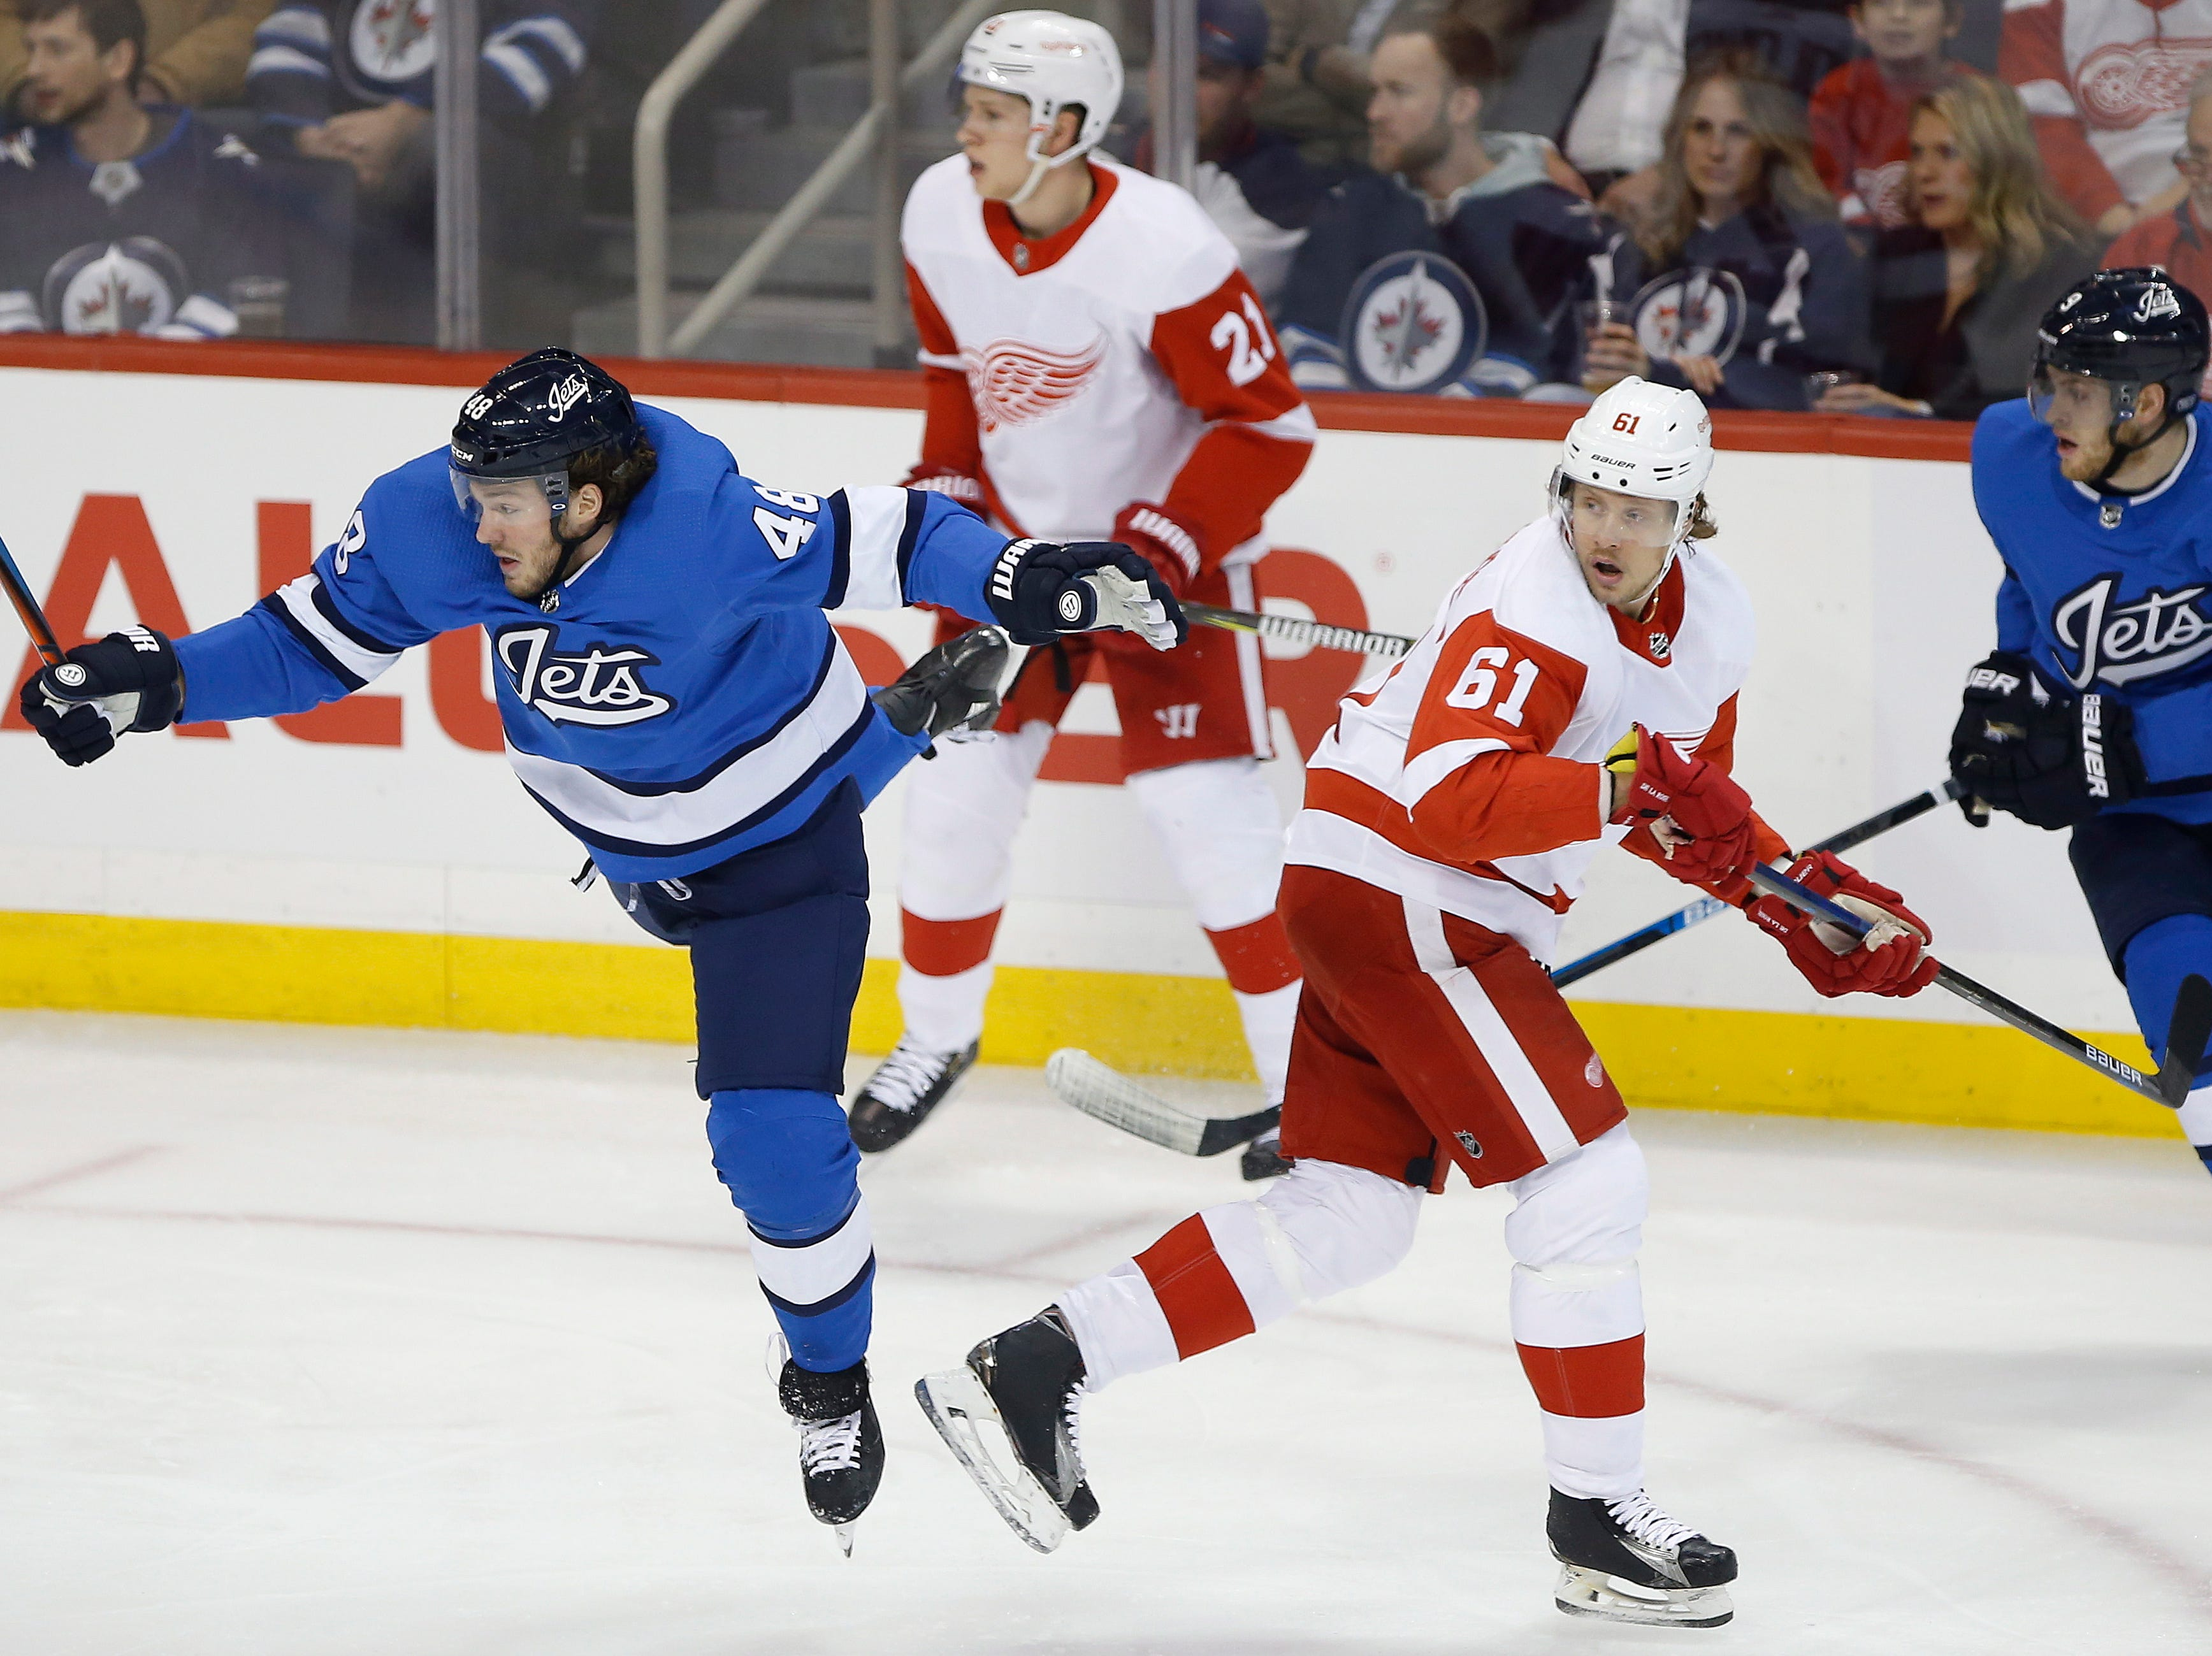 Winnipeg Jets' Brendan Lemieux (48) and Detroit Red Wings' Jacob de la Rose (61) collide during the first period.